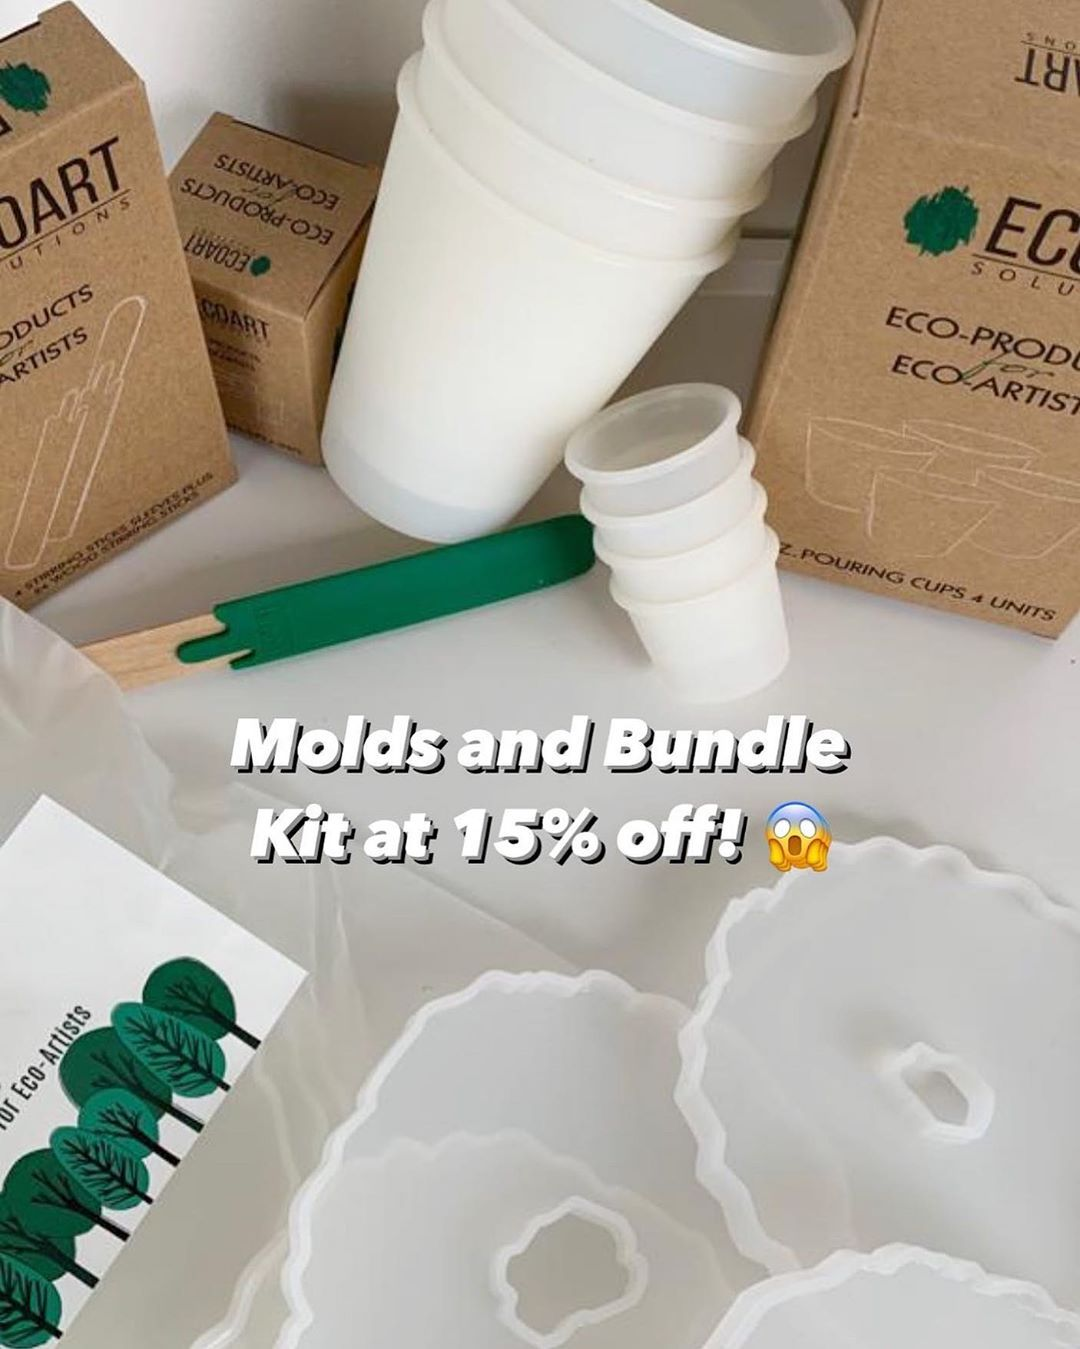 Labor Day Sale is still on! ✨  This is your chance to hoard eco-friendly materials that is perfect for your artworks and perfect for the environment.  Click the link and add to cart now! Use code: LD15 to get 15% off your total purchase! 🤩  #resin #resincoastermolds #resinlife #resinmold #resincast #resintray #resinartwork #resinart #handmaderesin #resinwithlove #artistsoninstagram #acrylicart #diyresin #geodeart #resincoasters #pouringart #epoxyresin #epoxyresincoasters #epoxyart #epoxyartists